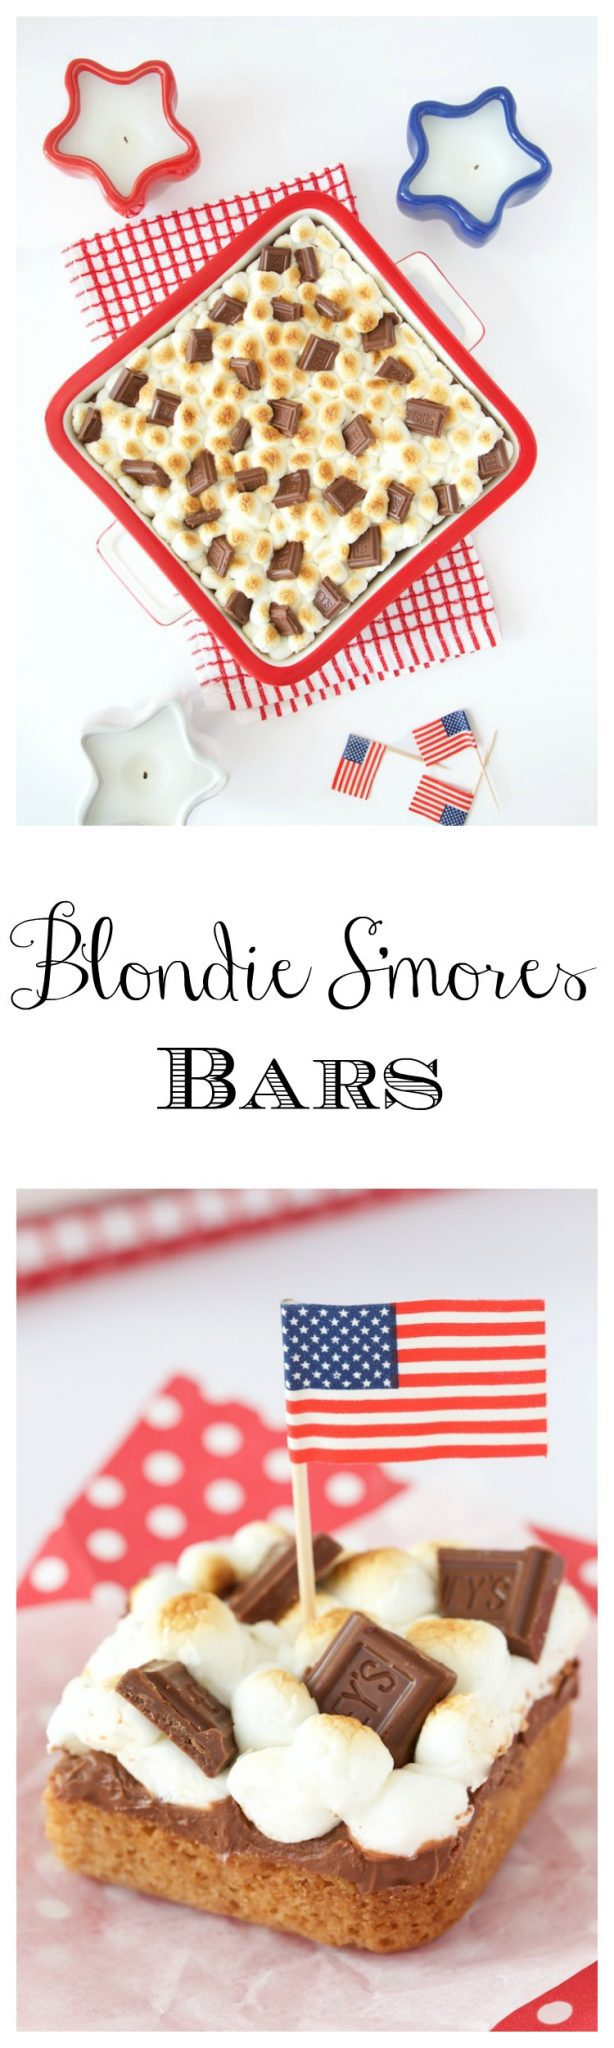 Blondie S'mores Bars - a merging of two all time favorite sweet treats, blondies and good old fashioned s'mores.